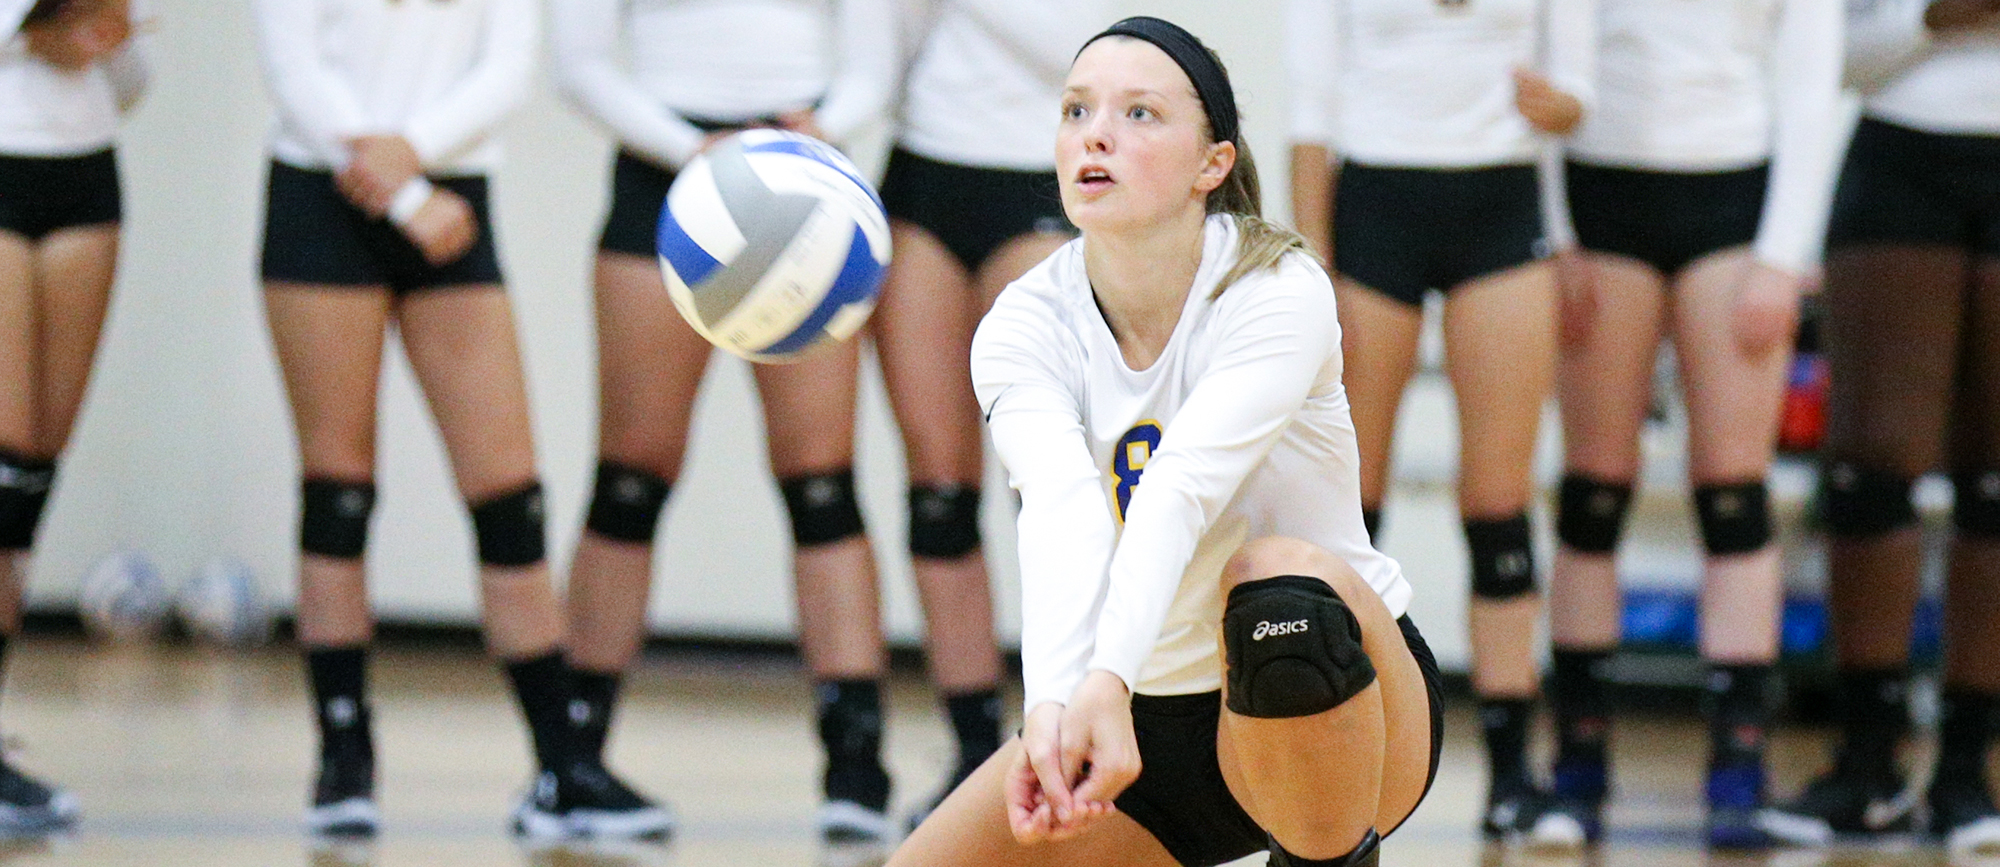 Junior Ashley Matthews recorded 15 kills in Western New England's 3-1 loss to Clark on Thursday. (Photo by Chris Marion)